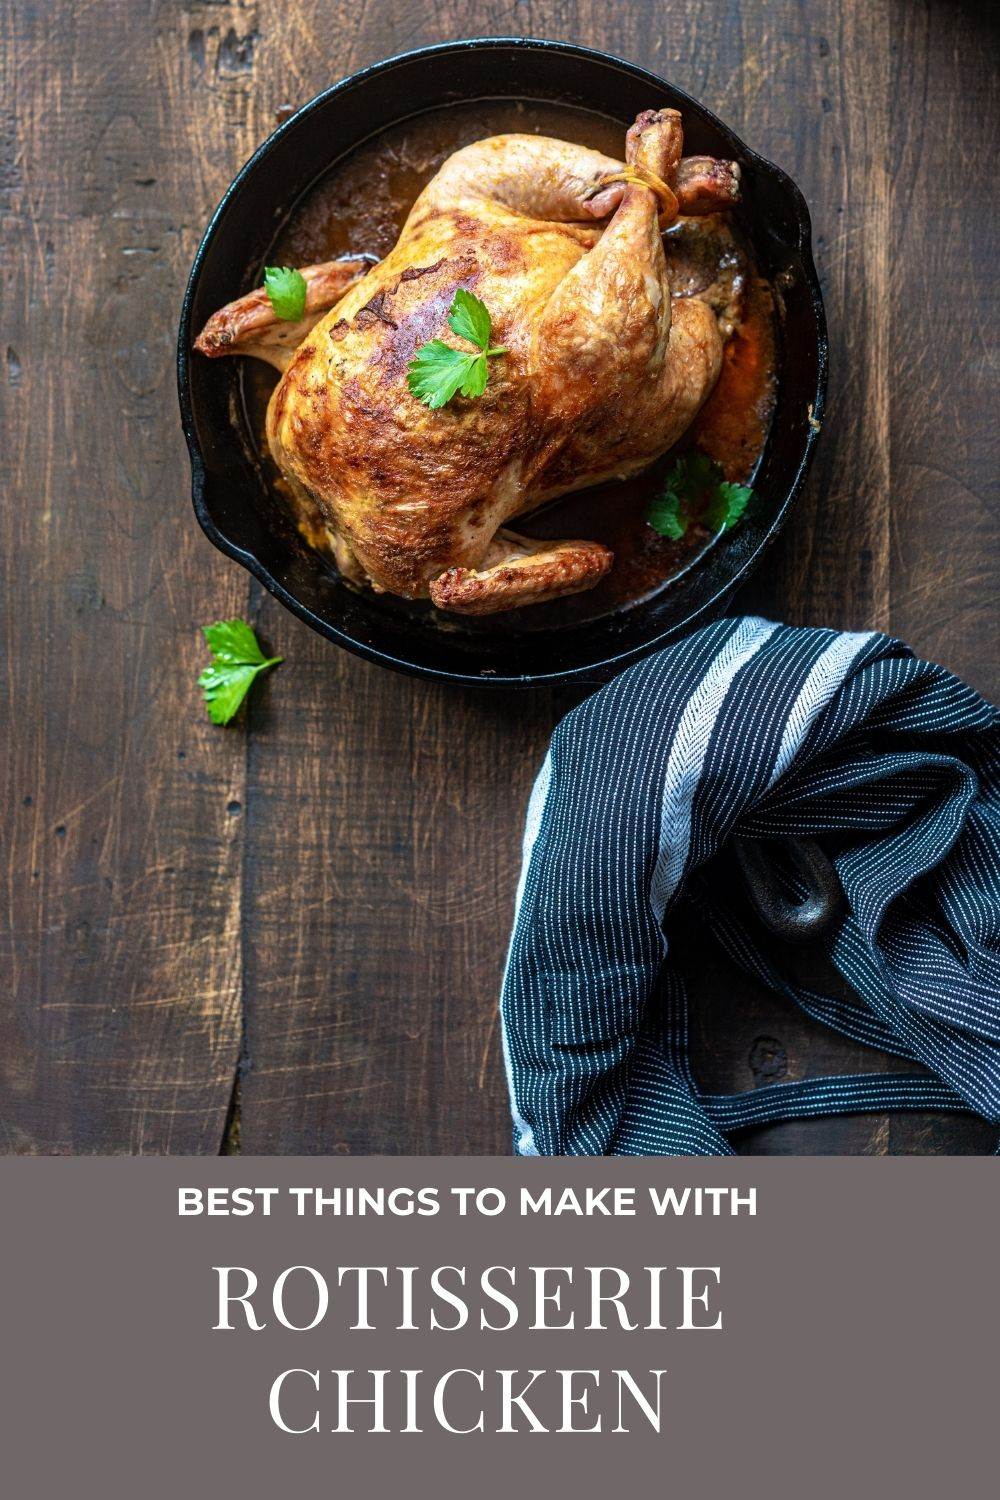 things to make with rotisserie chicken graphic